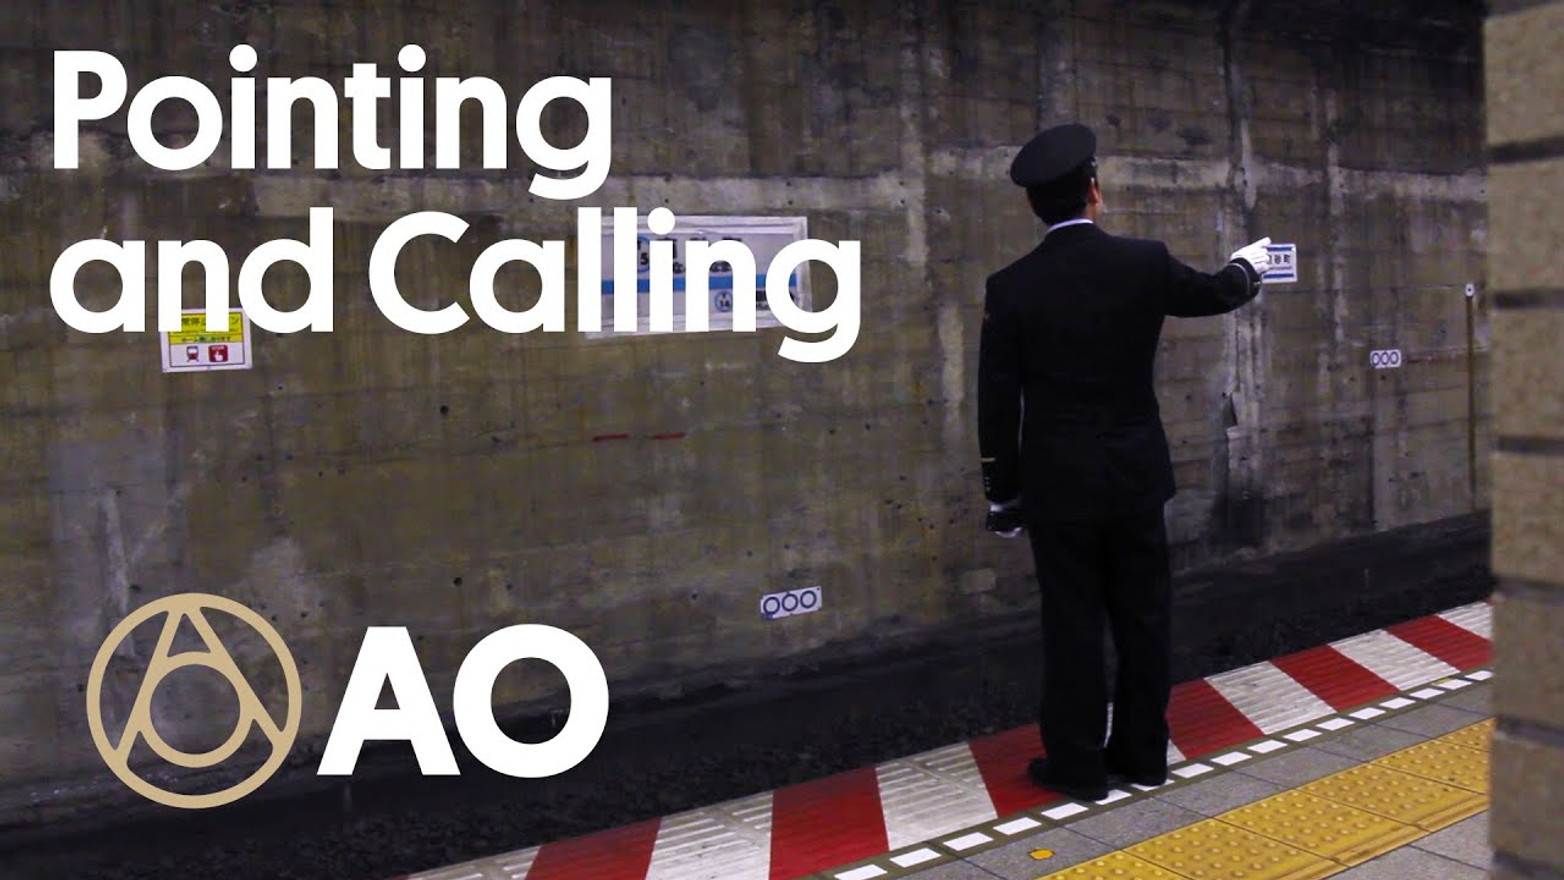 ATLAS OBSCURA - Pointing and Calling